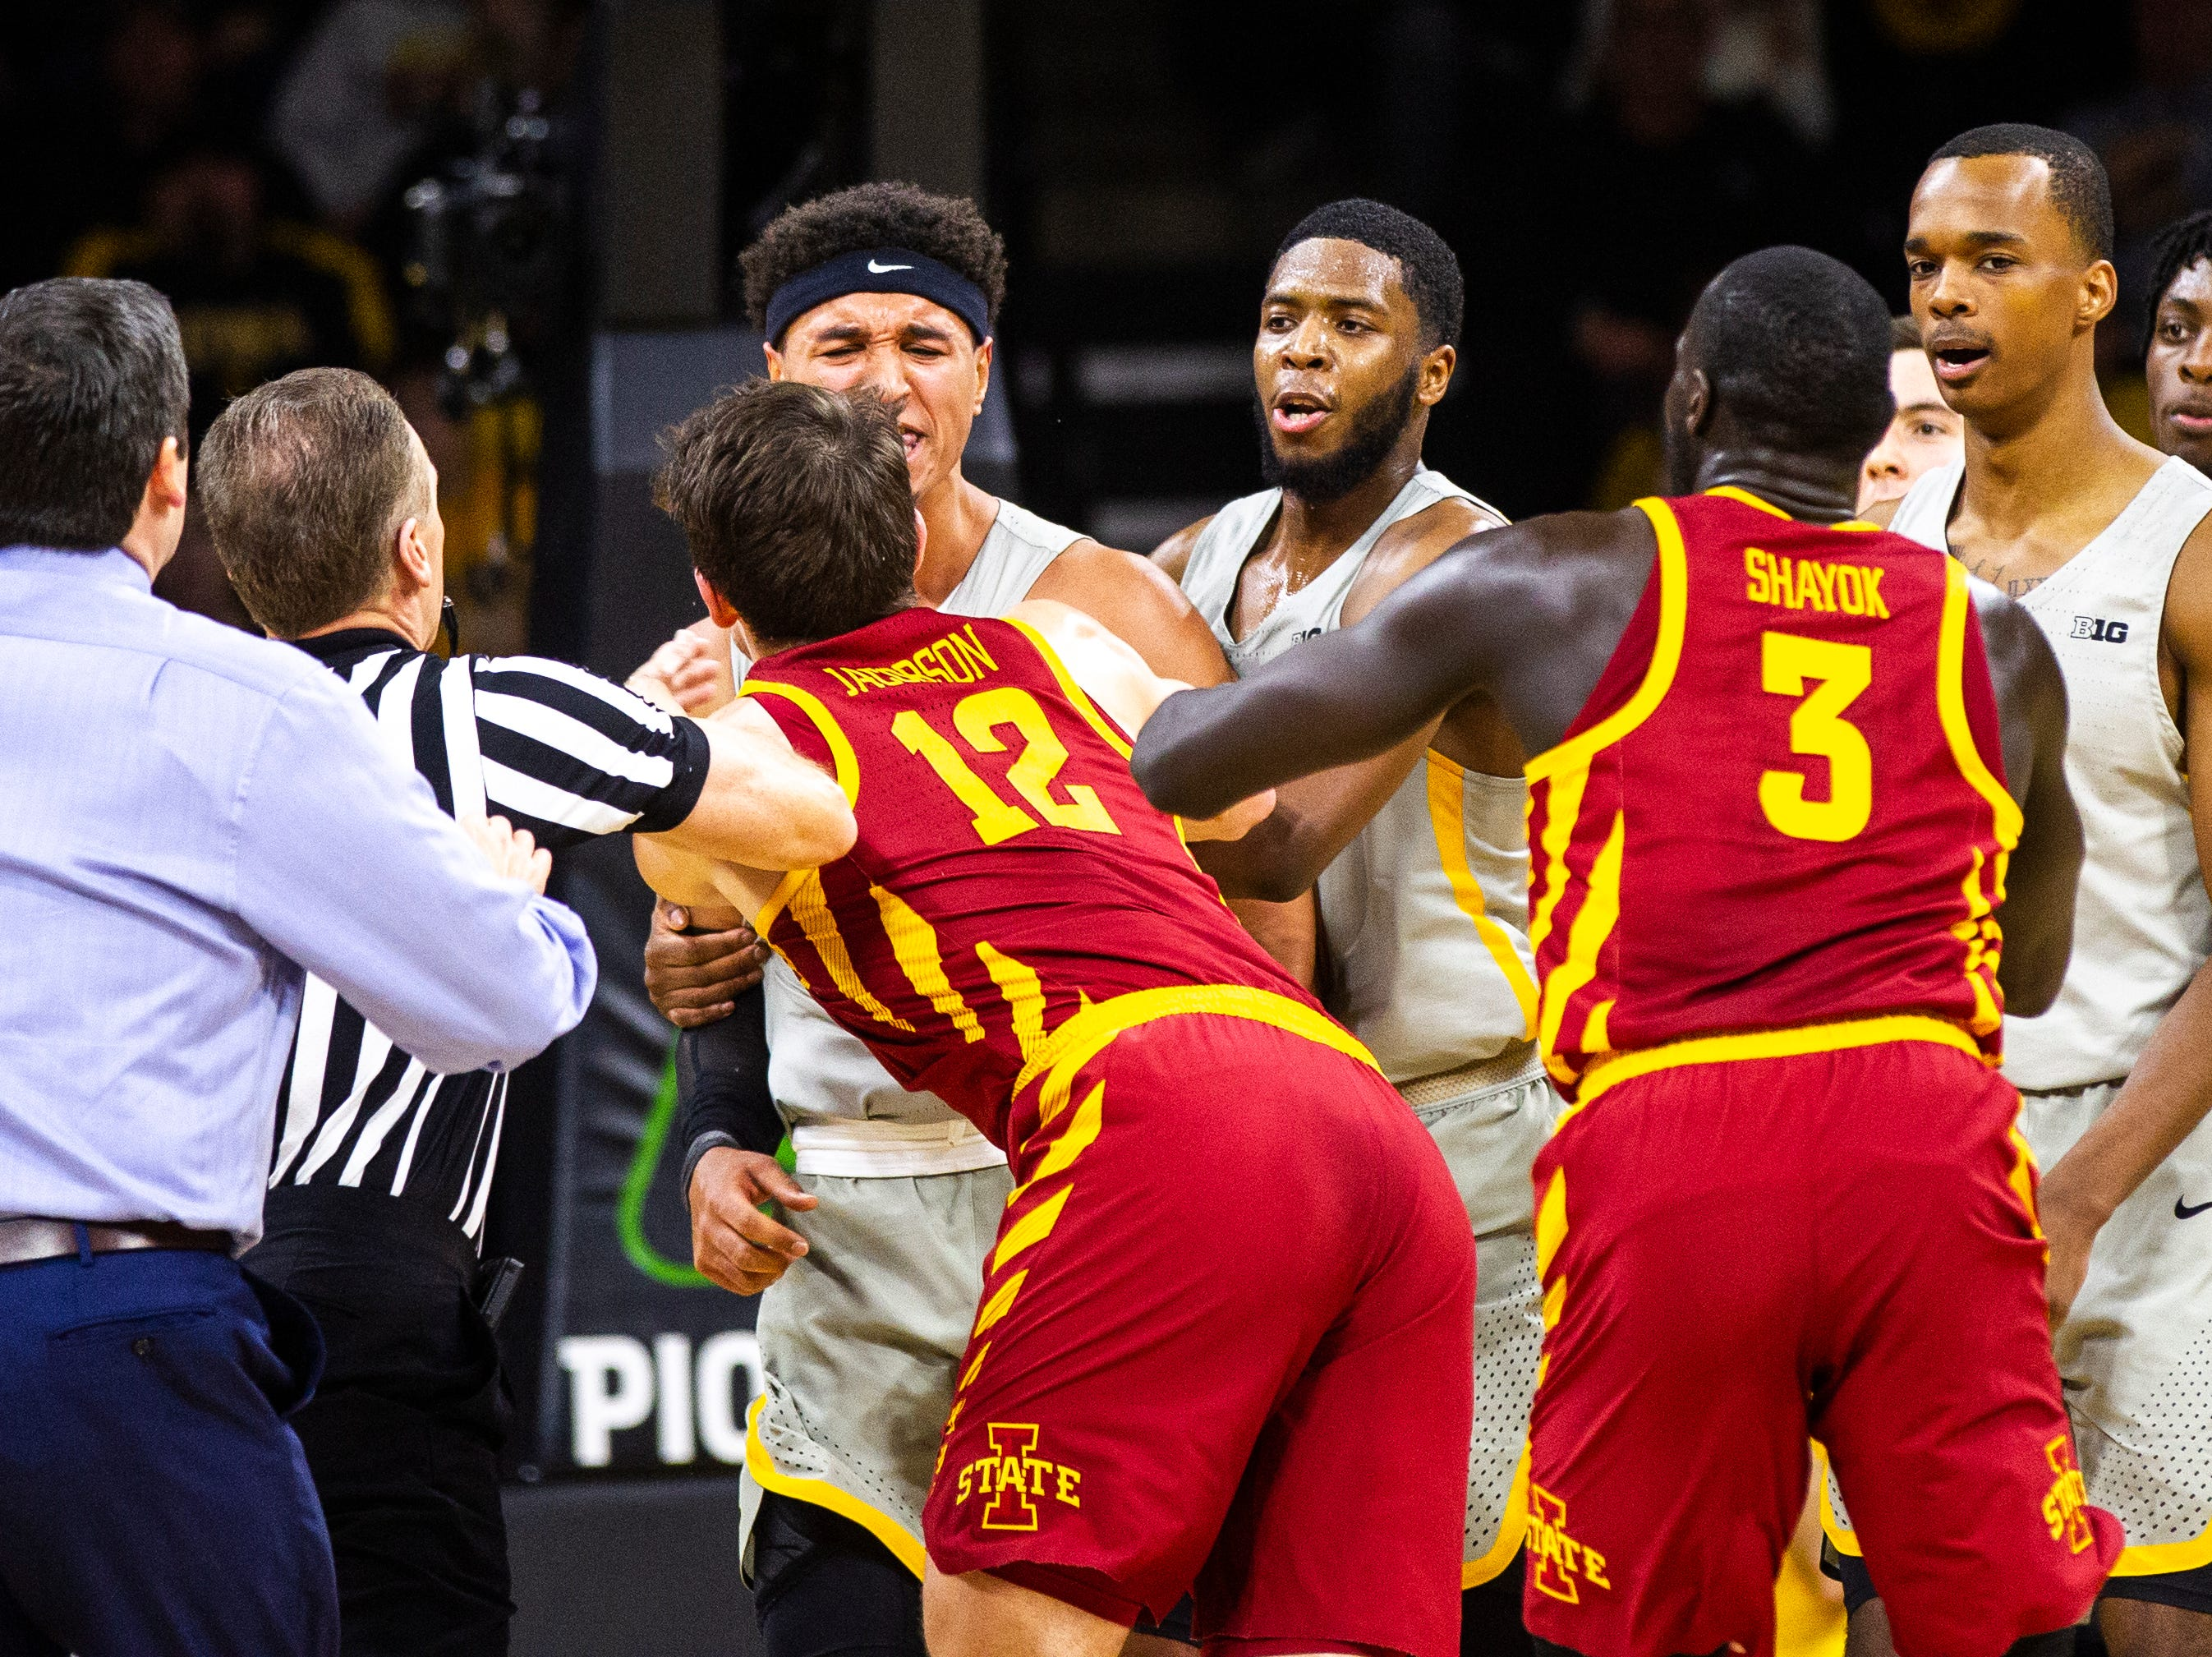 Iowa forward Cordell Pemsl (35) gets tangled up with Iowa State forward Michael Jacobson (12) while Iowa State head coach Steve Prohm (far left) runs in during a NCAA Cy-Hawk series men's basketball game on Thursday, Dec. 6, 2018, at Carver-Hawkeye Arena in Iowa City.